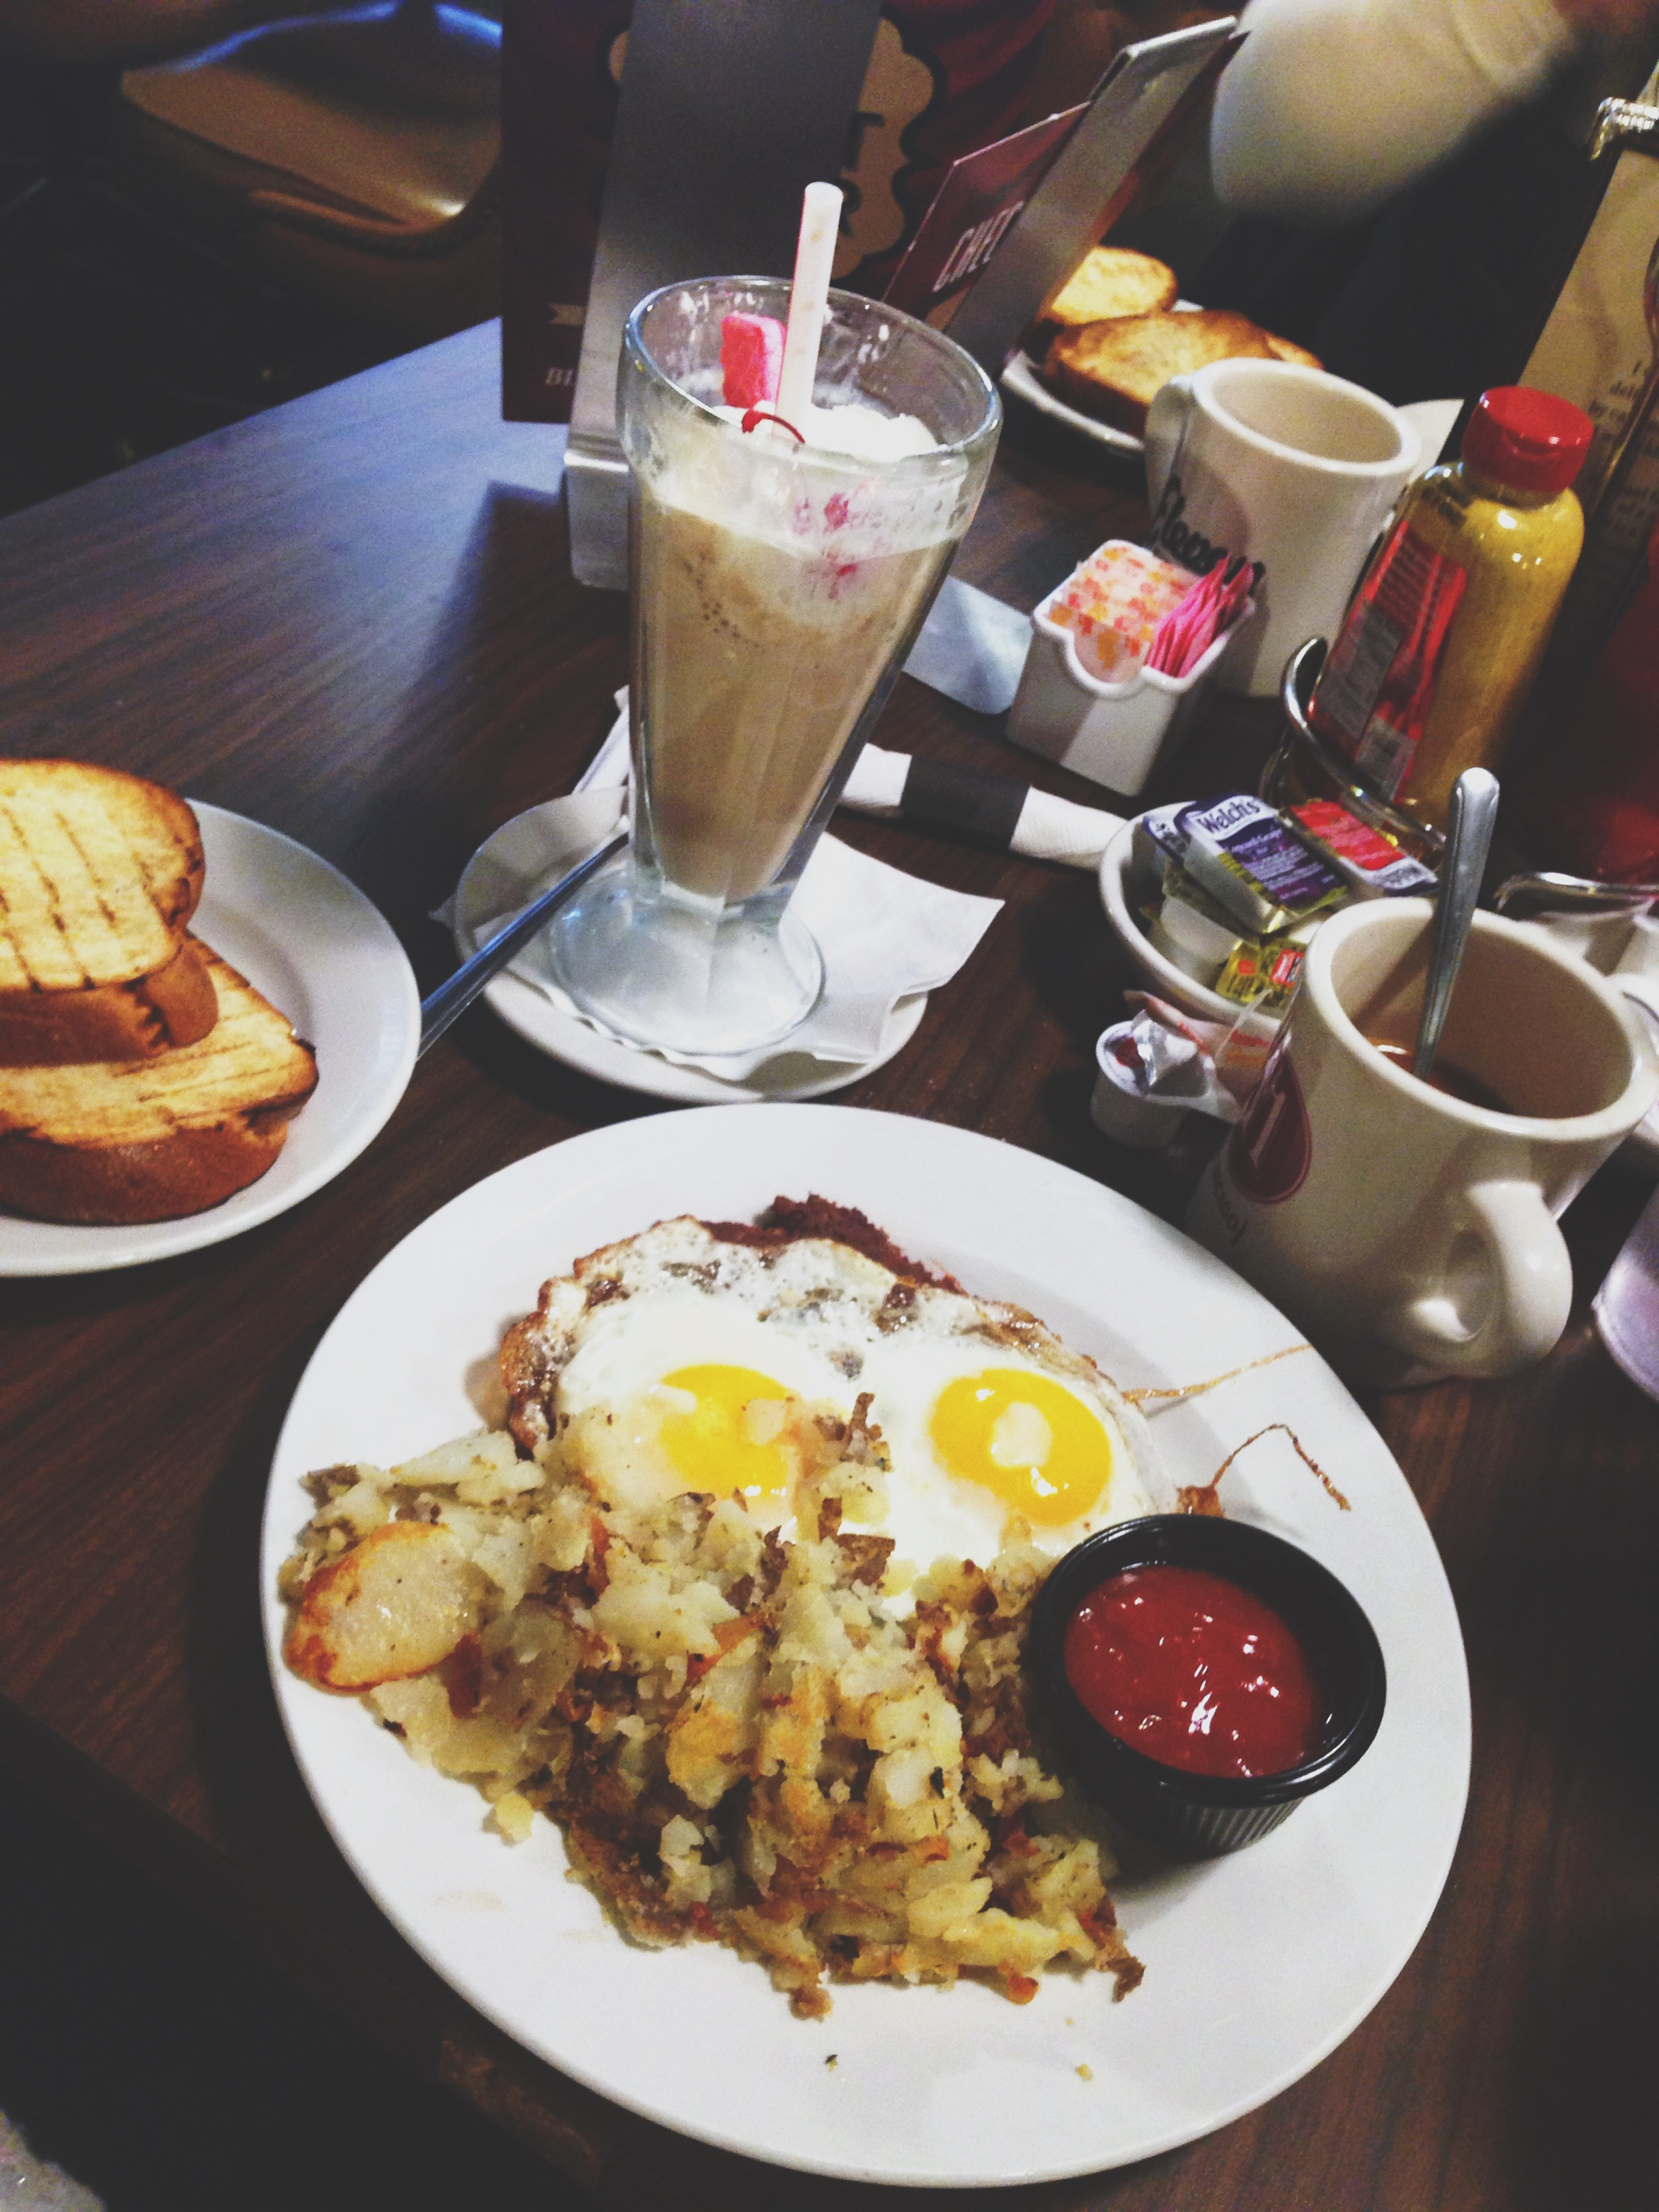 Pastrami and Corned Beef Hash at Eleven City Diner